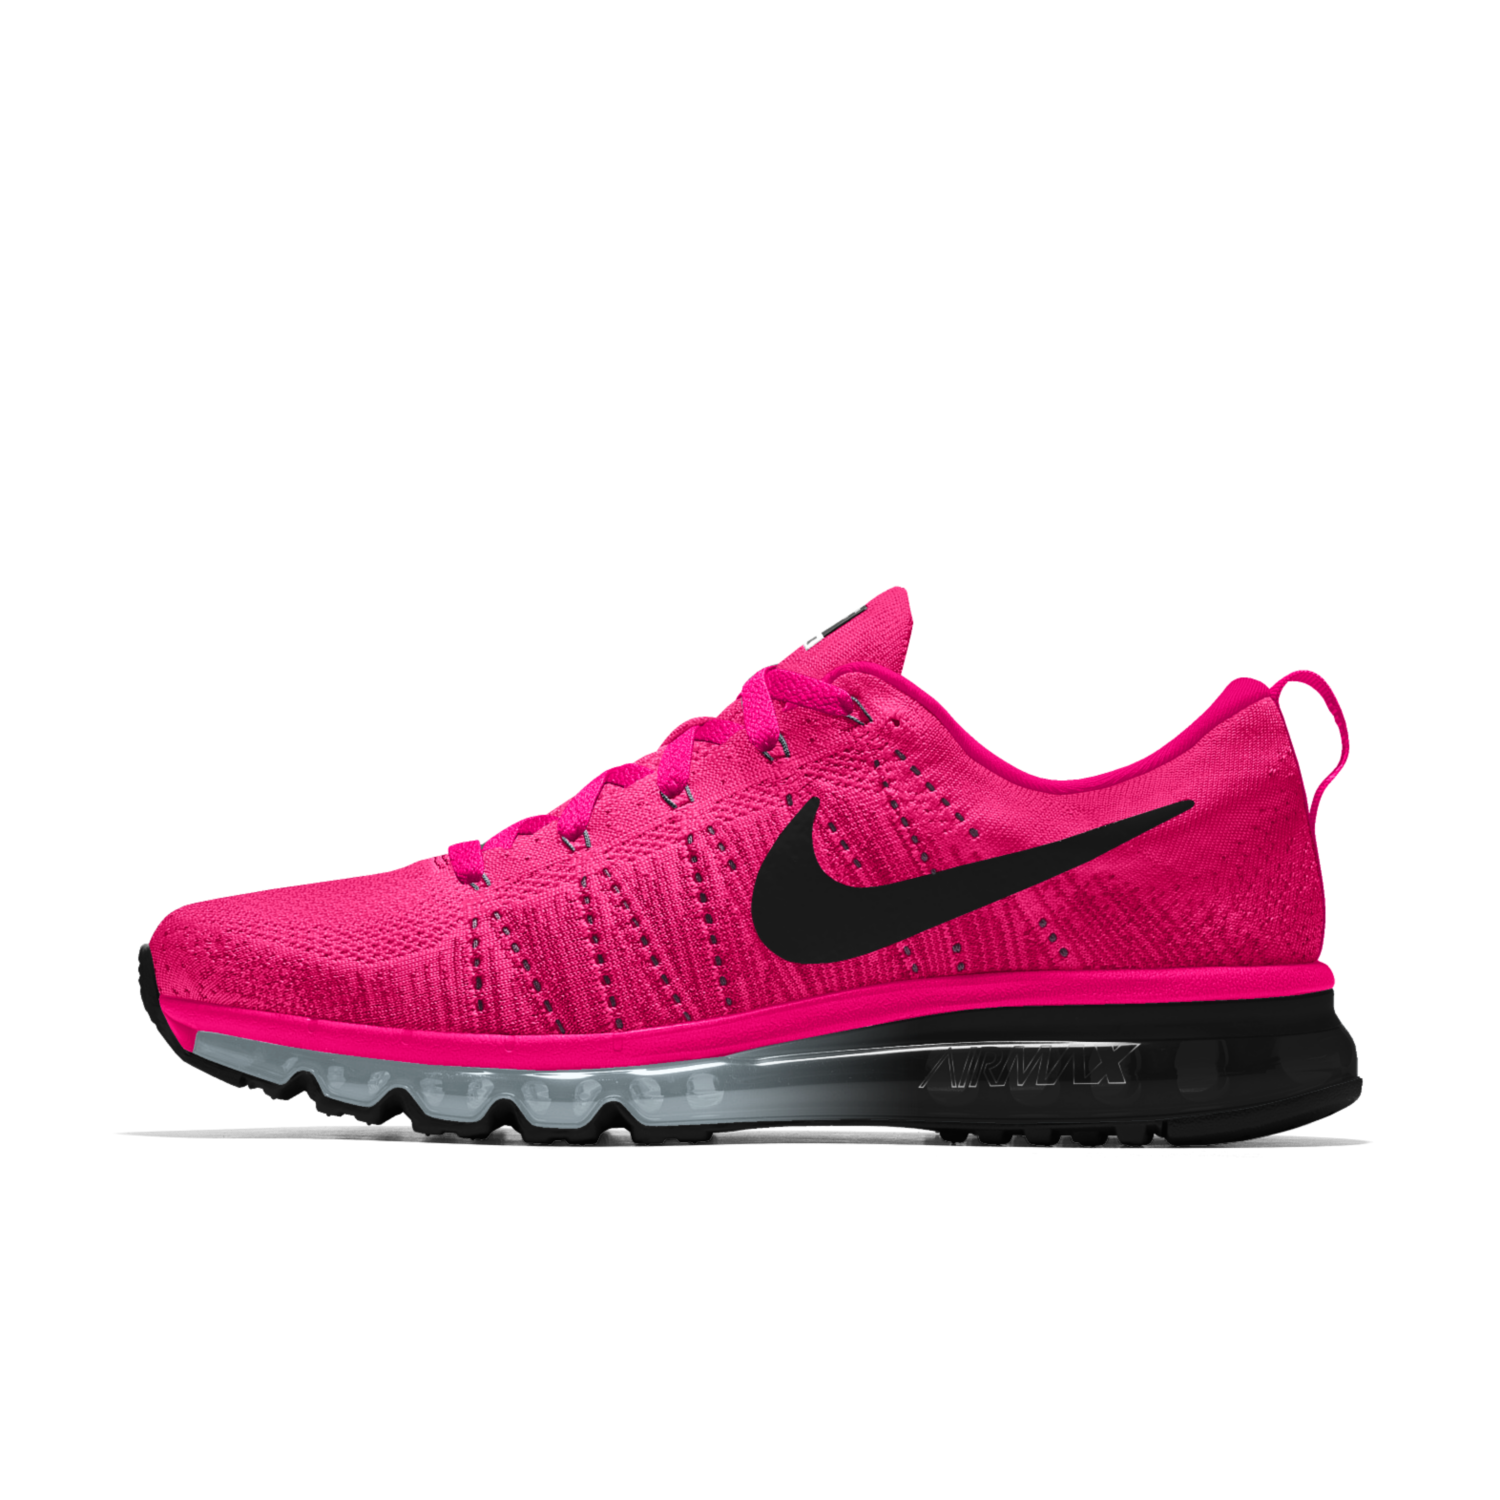 new arrivals 40095 e8a2d Nike Flyknit Air Max iD Women s Running Shoe Nike Free 4.0 ...